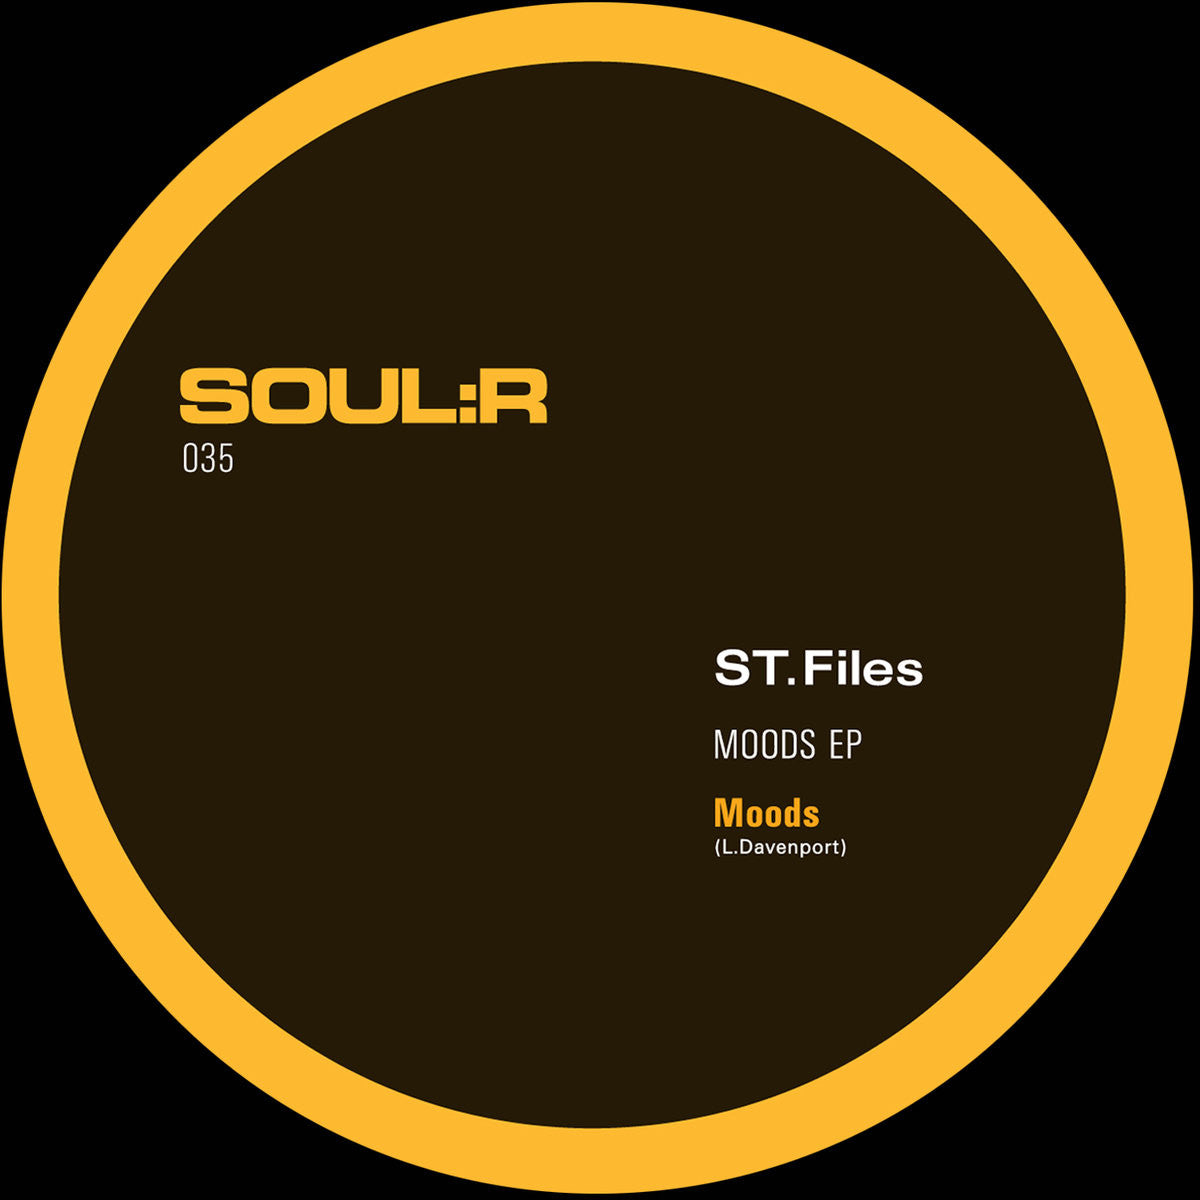 ST. Files - Moods , Vinyl - Soulr, Unearthed Sounds